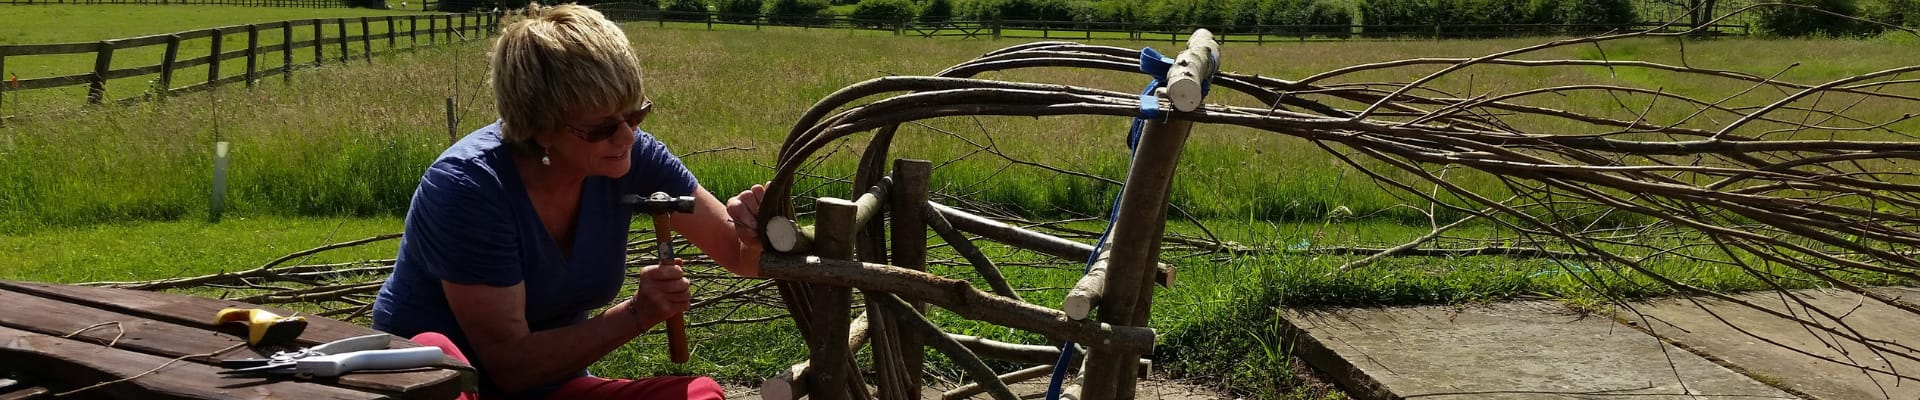 Making a Bentwood Chair outside with Countryside views